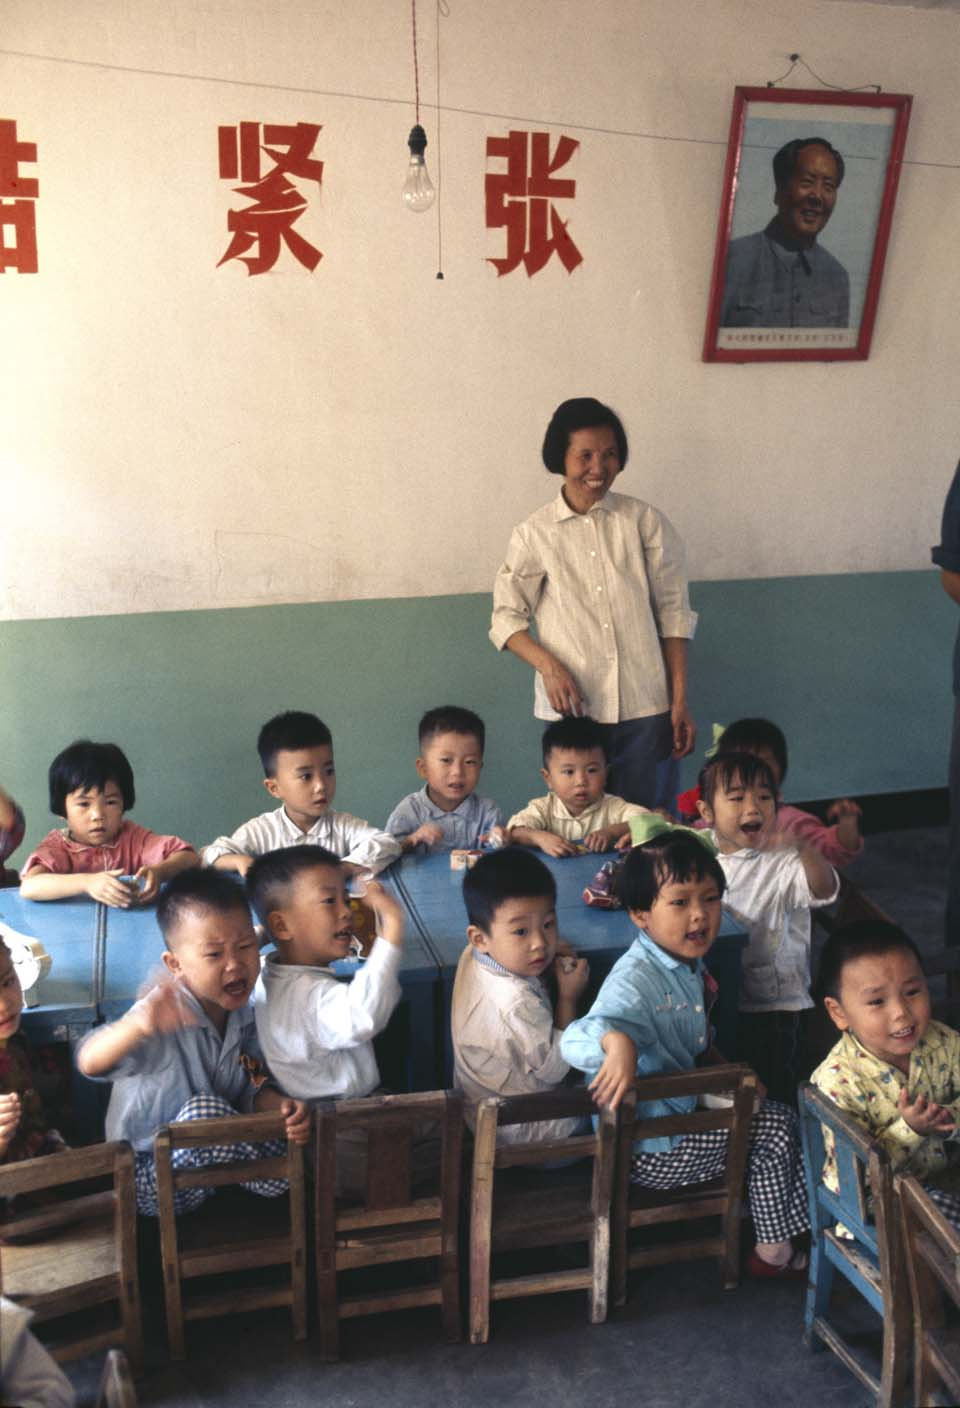 Kindergarten Beijing, 1973 © Bruno Barbey / Beaugeste Gallery